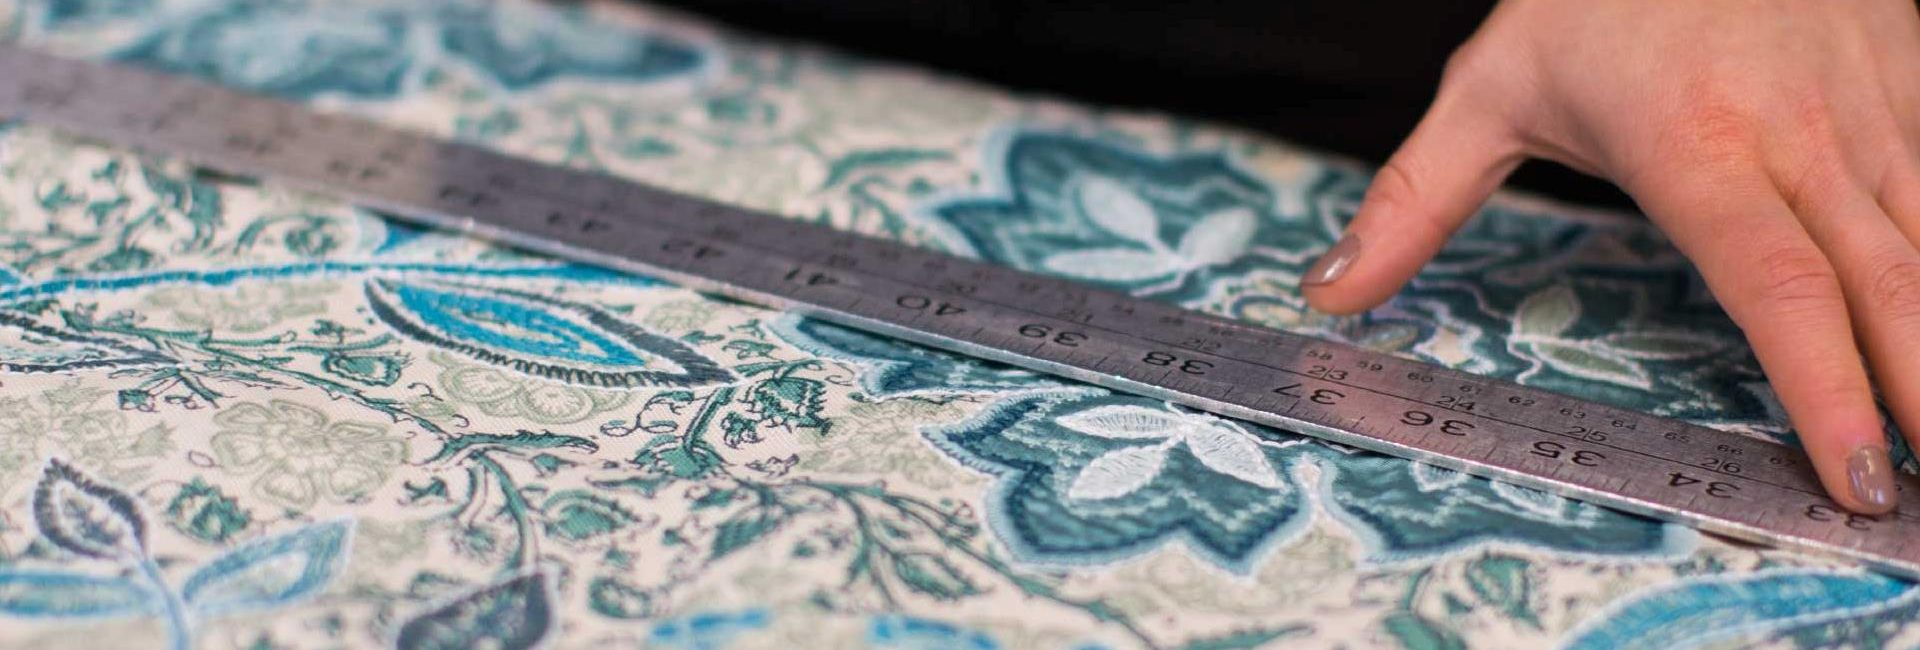 Cutting and measuring designer fabric to make curtains at Fabric Gallery and Interiors curtain workroom